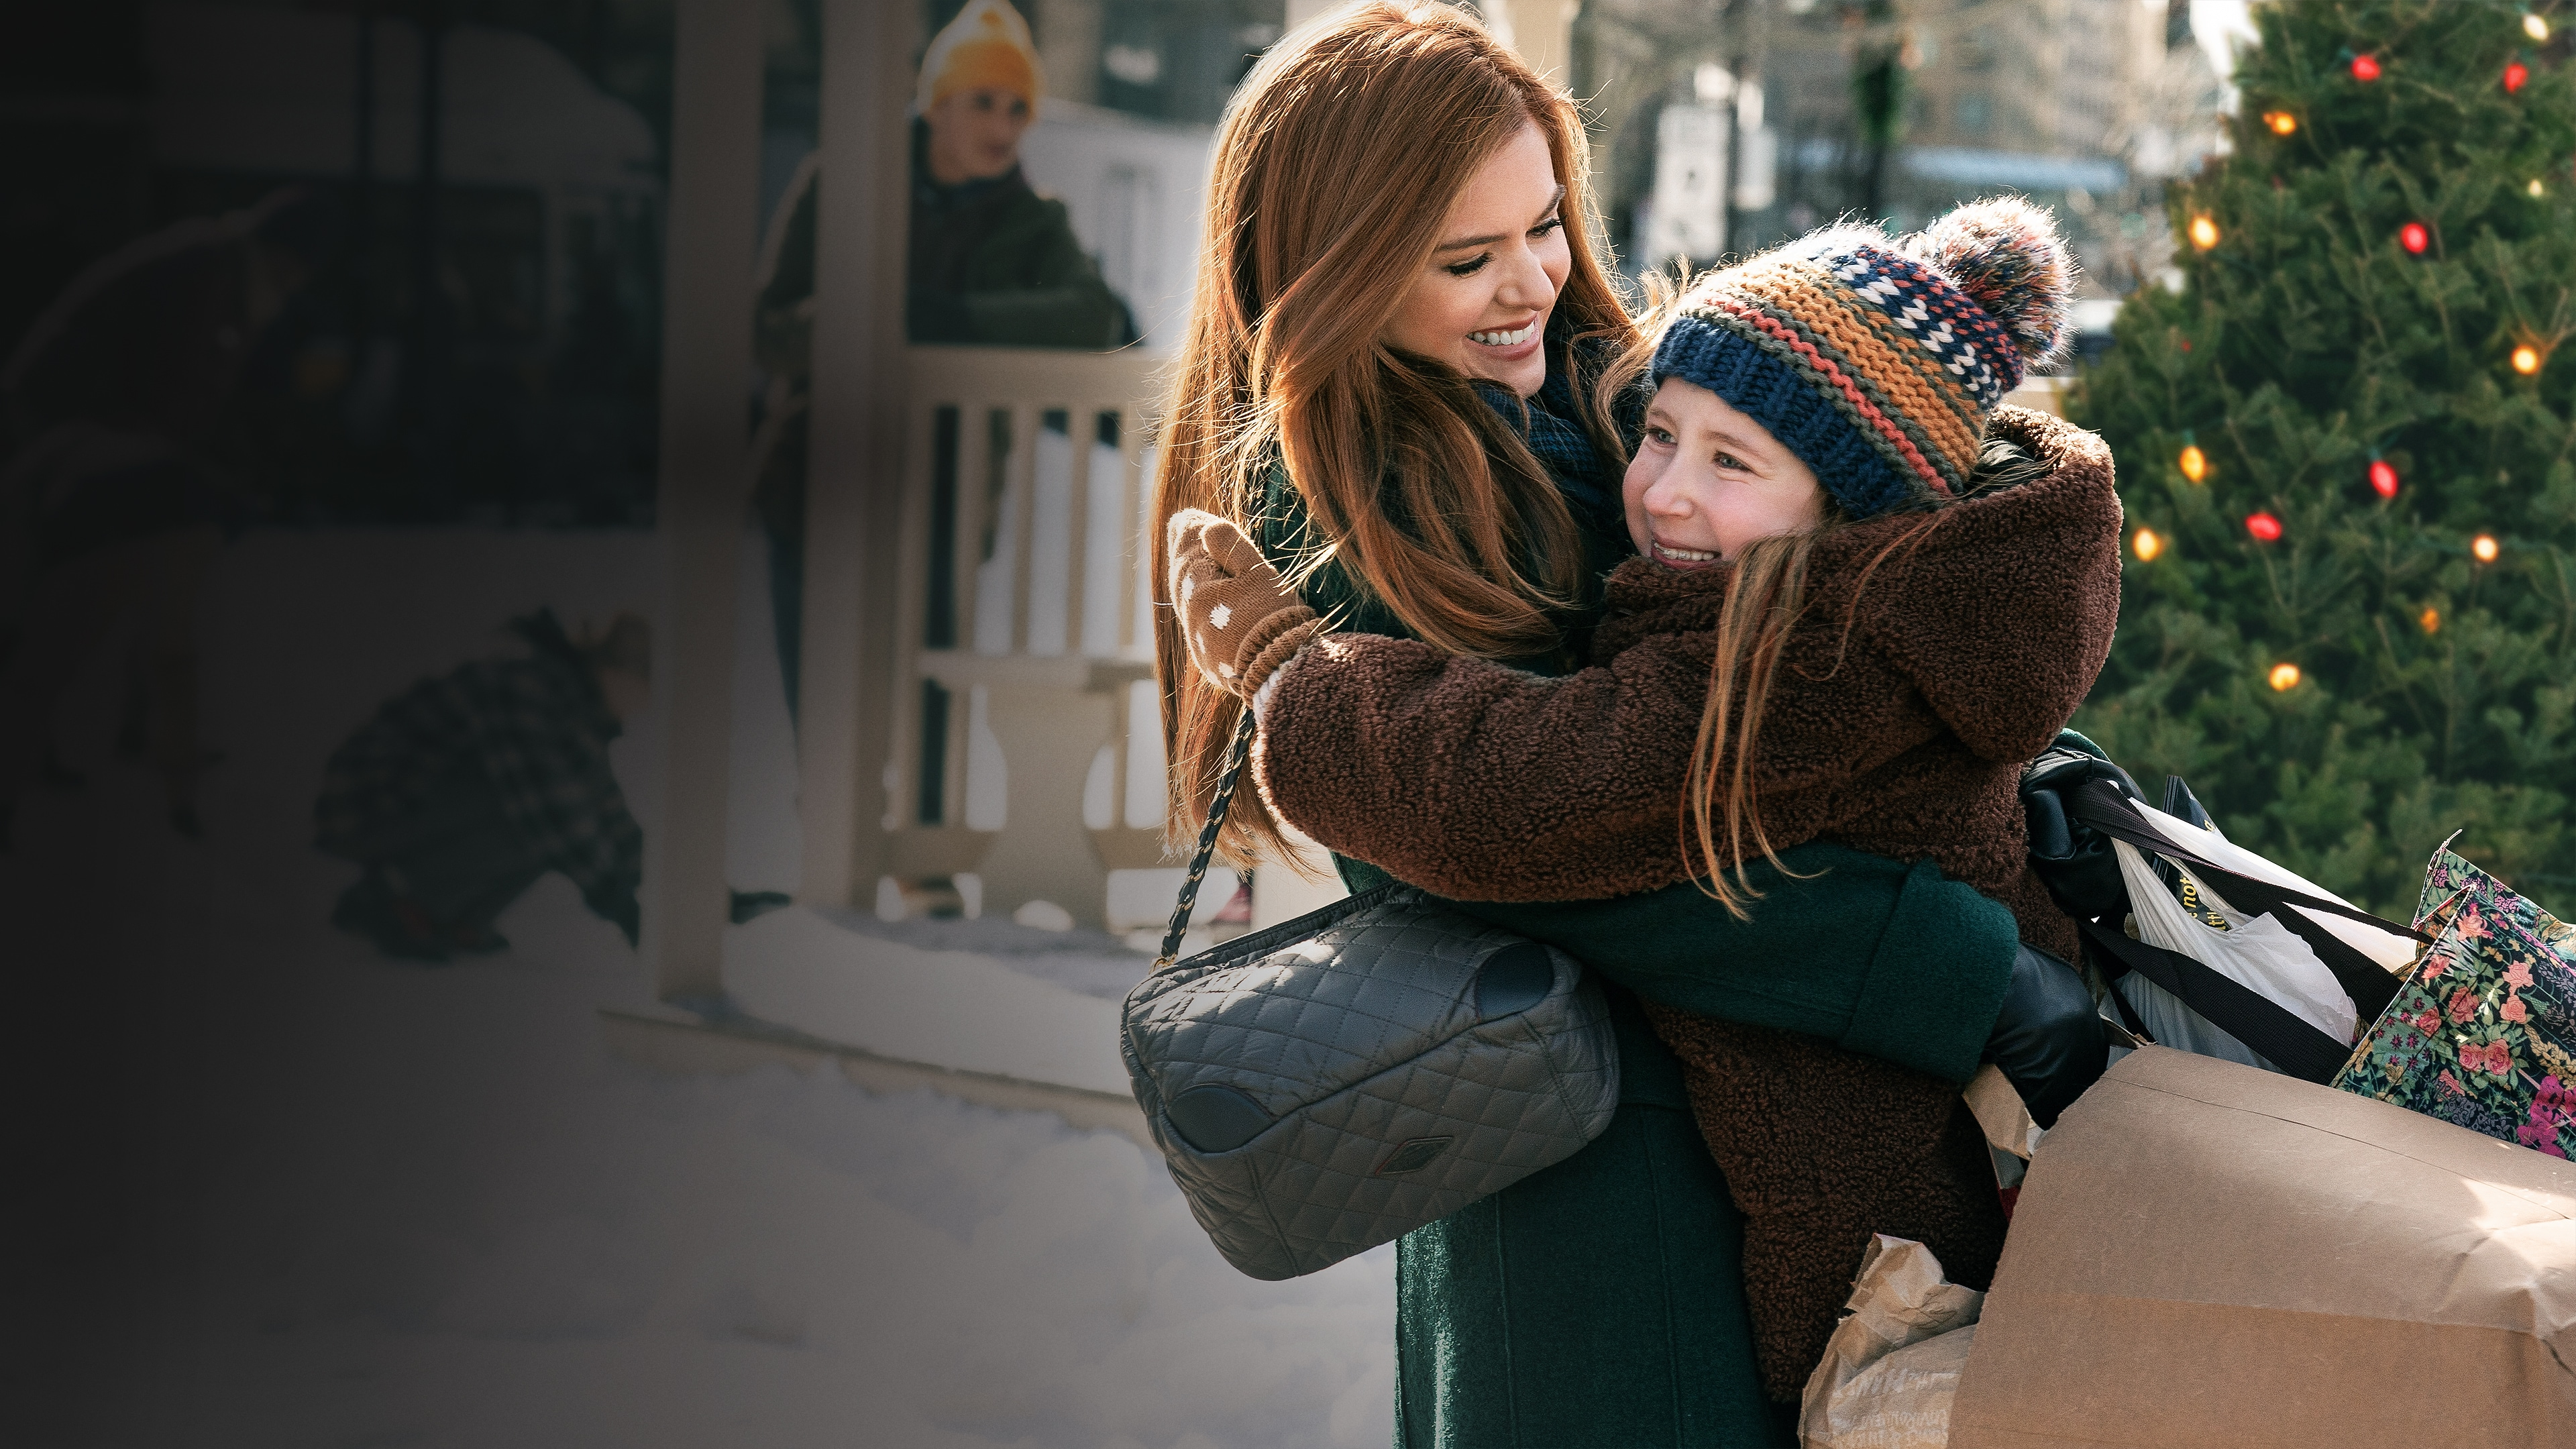 Isla fisher and Willa skye in godmothered